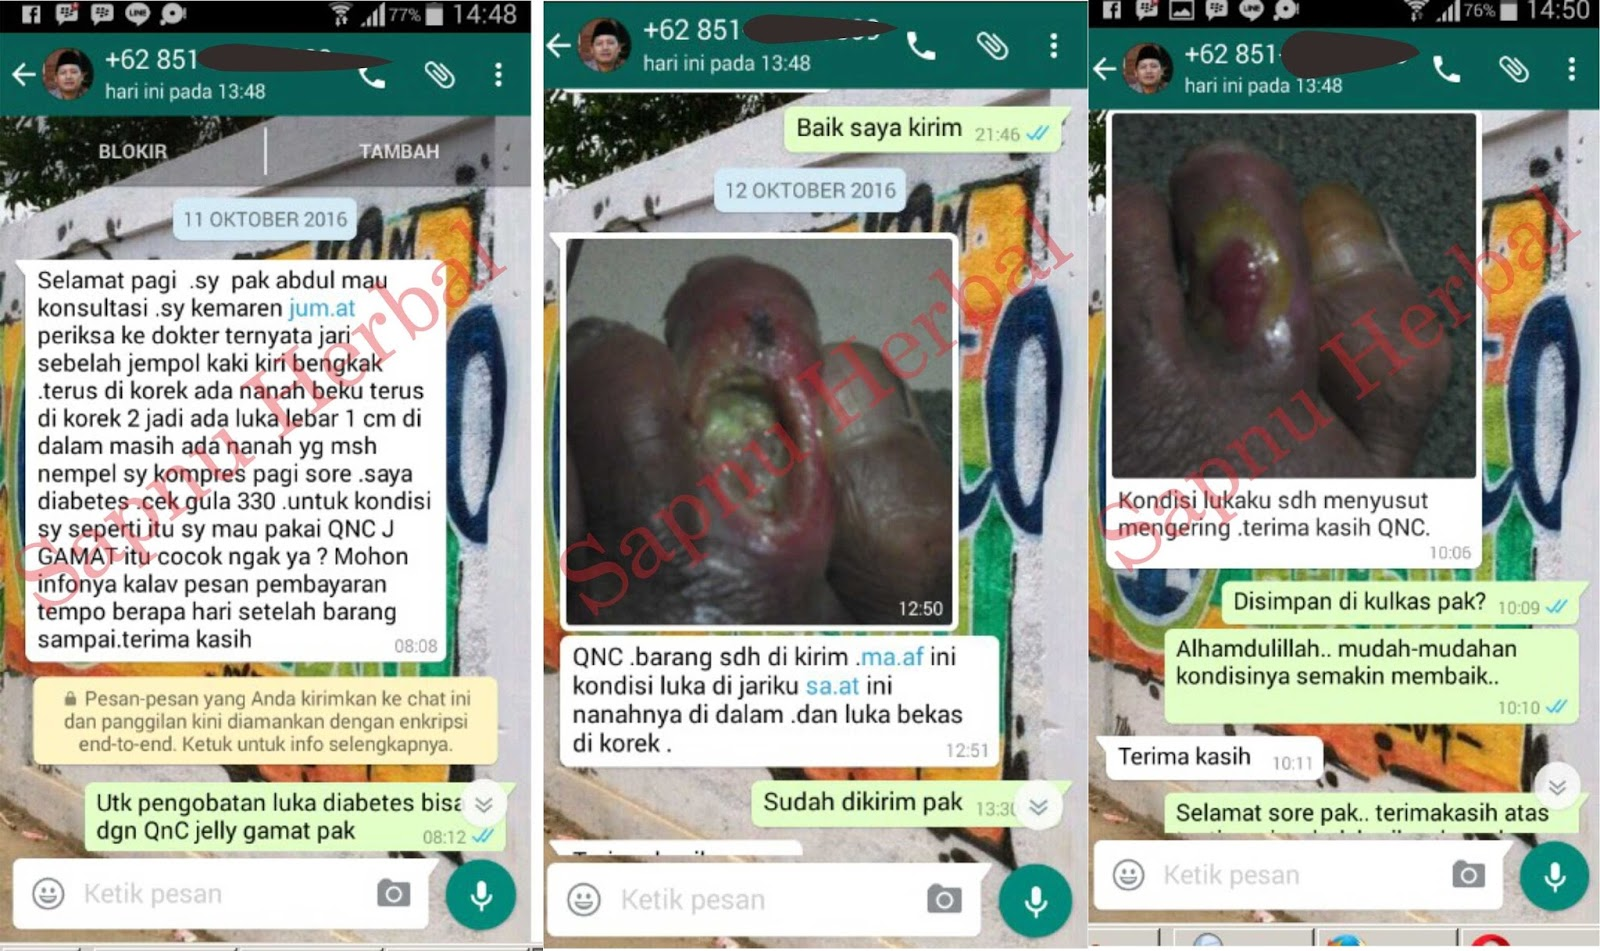 Testimoni QnC Jelly Gamat Luka Diabetes